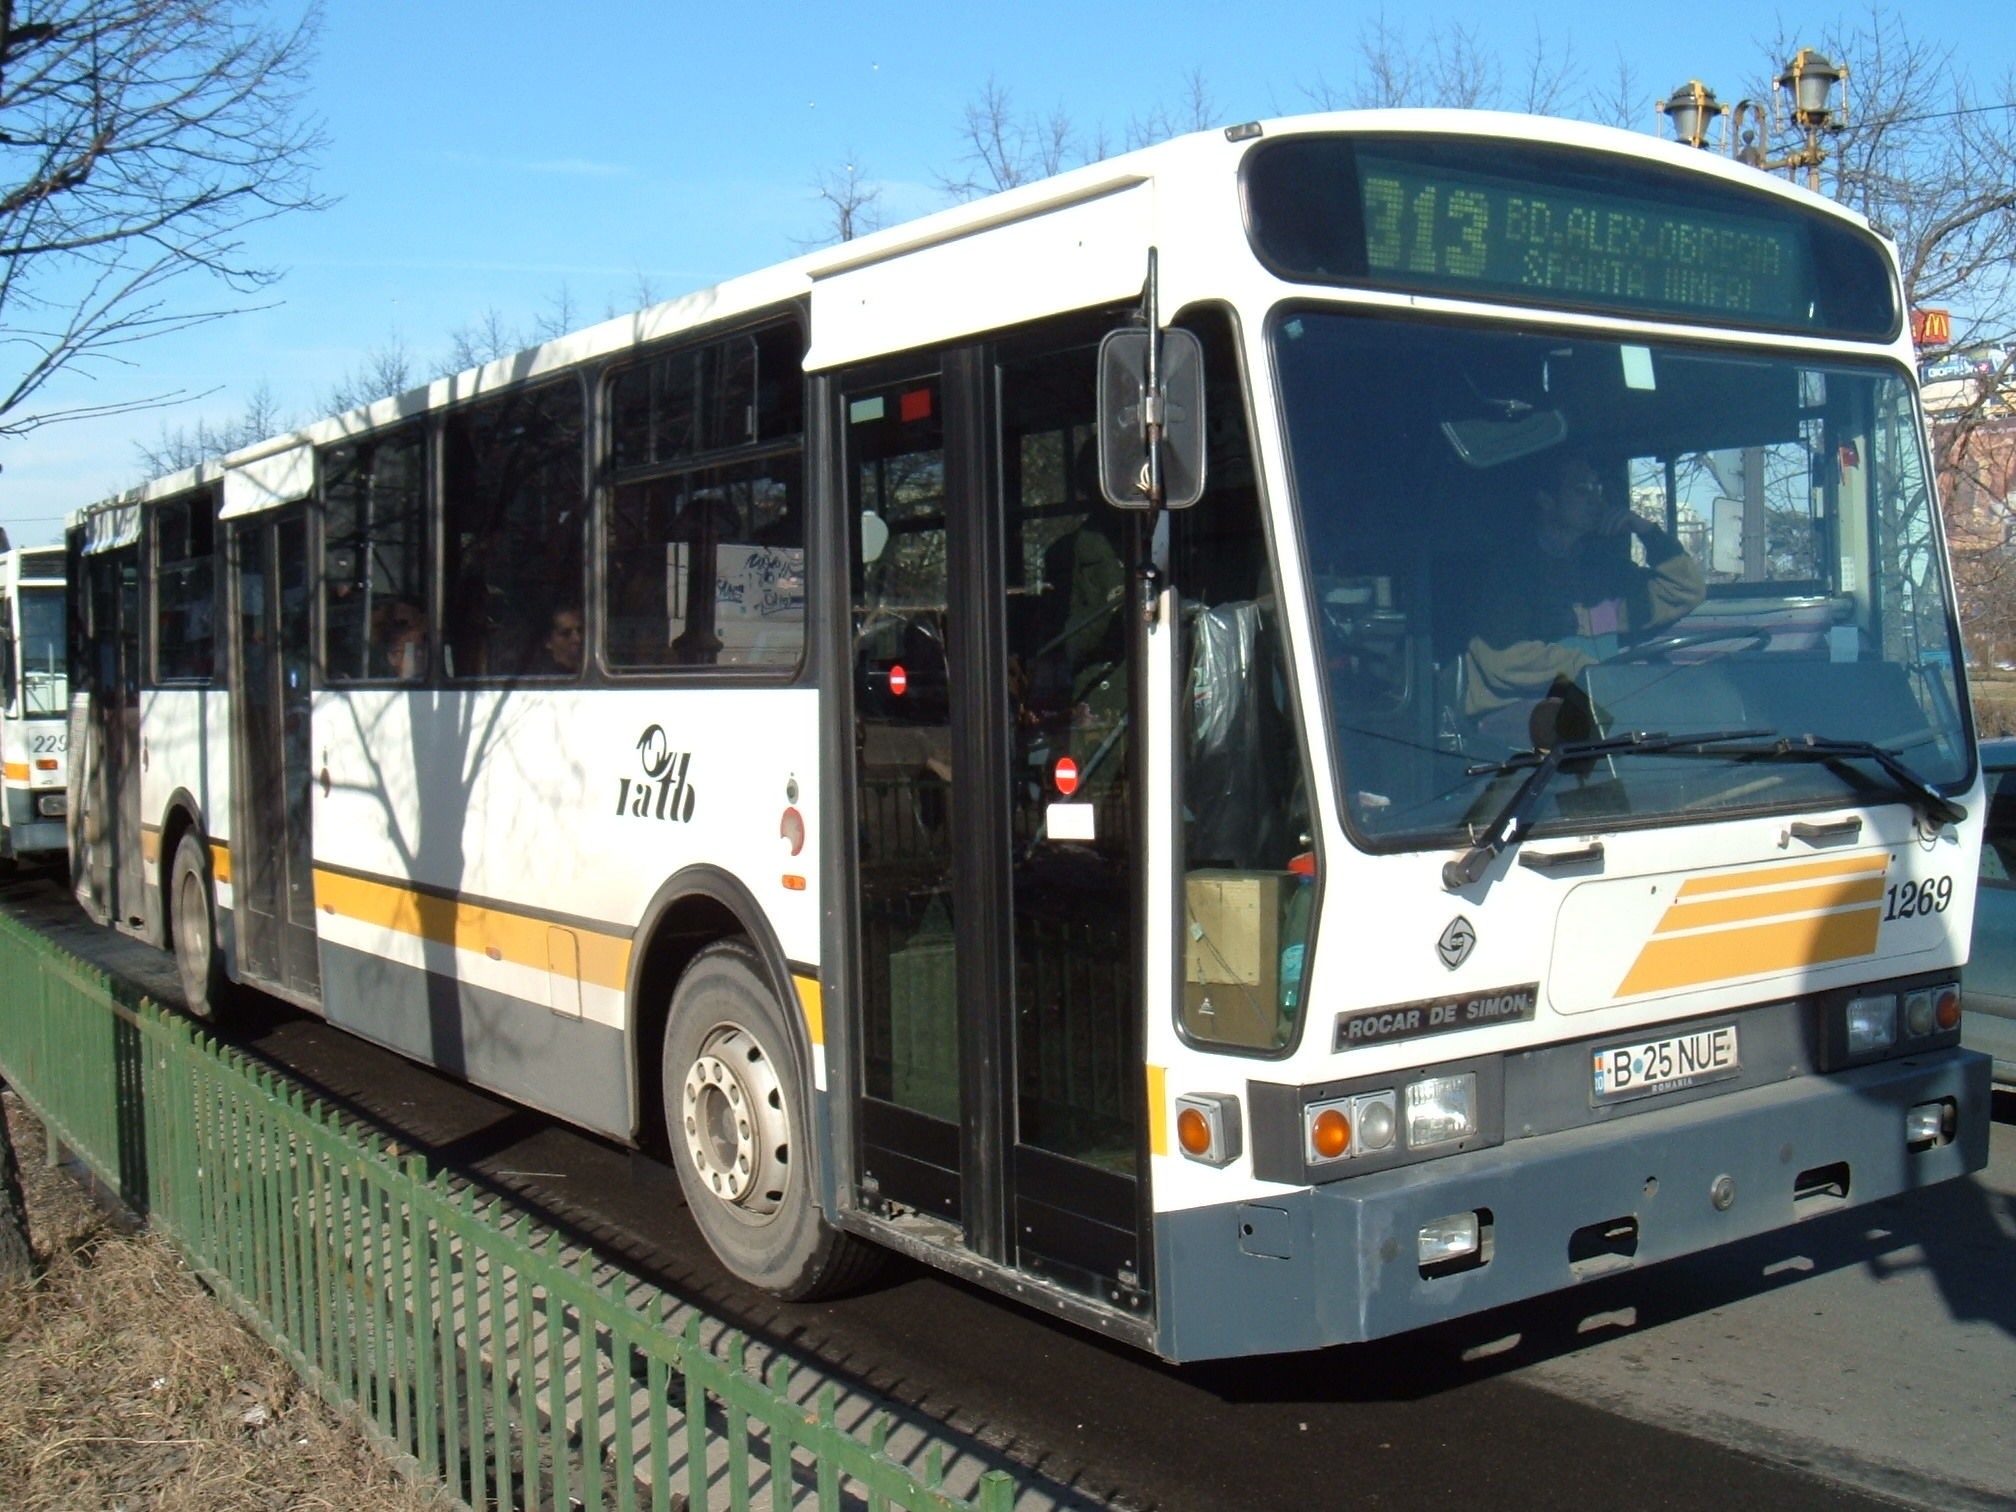 1269. Bus Rocar DeSimon on line 313